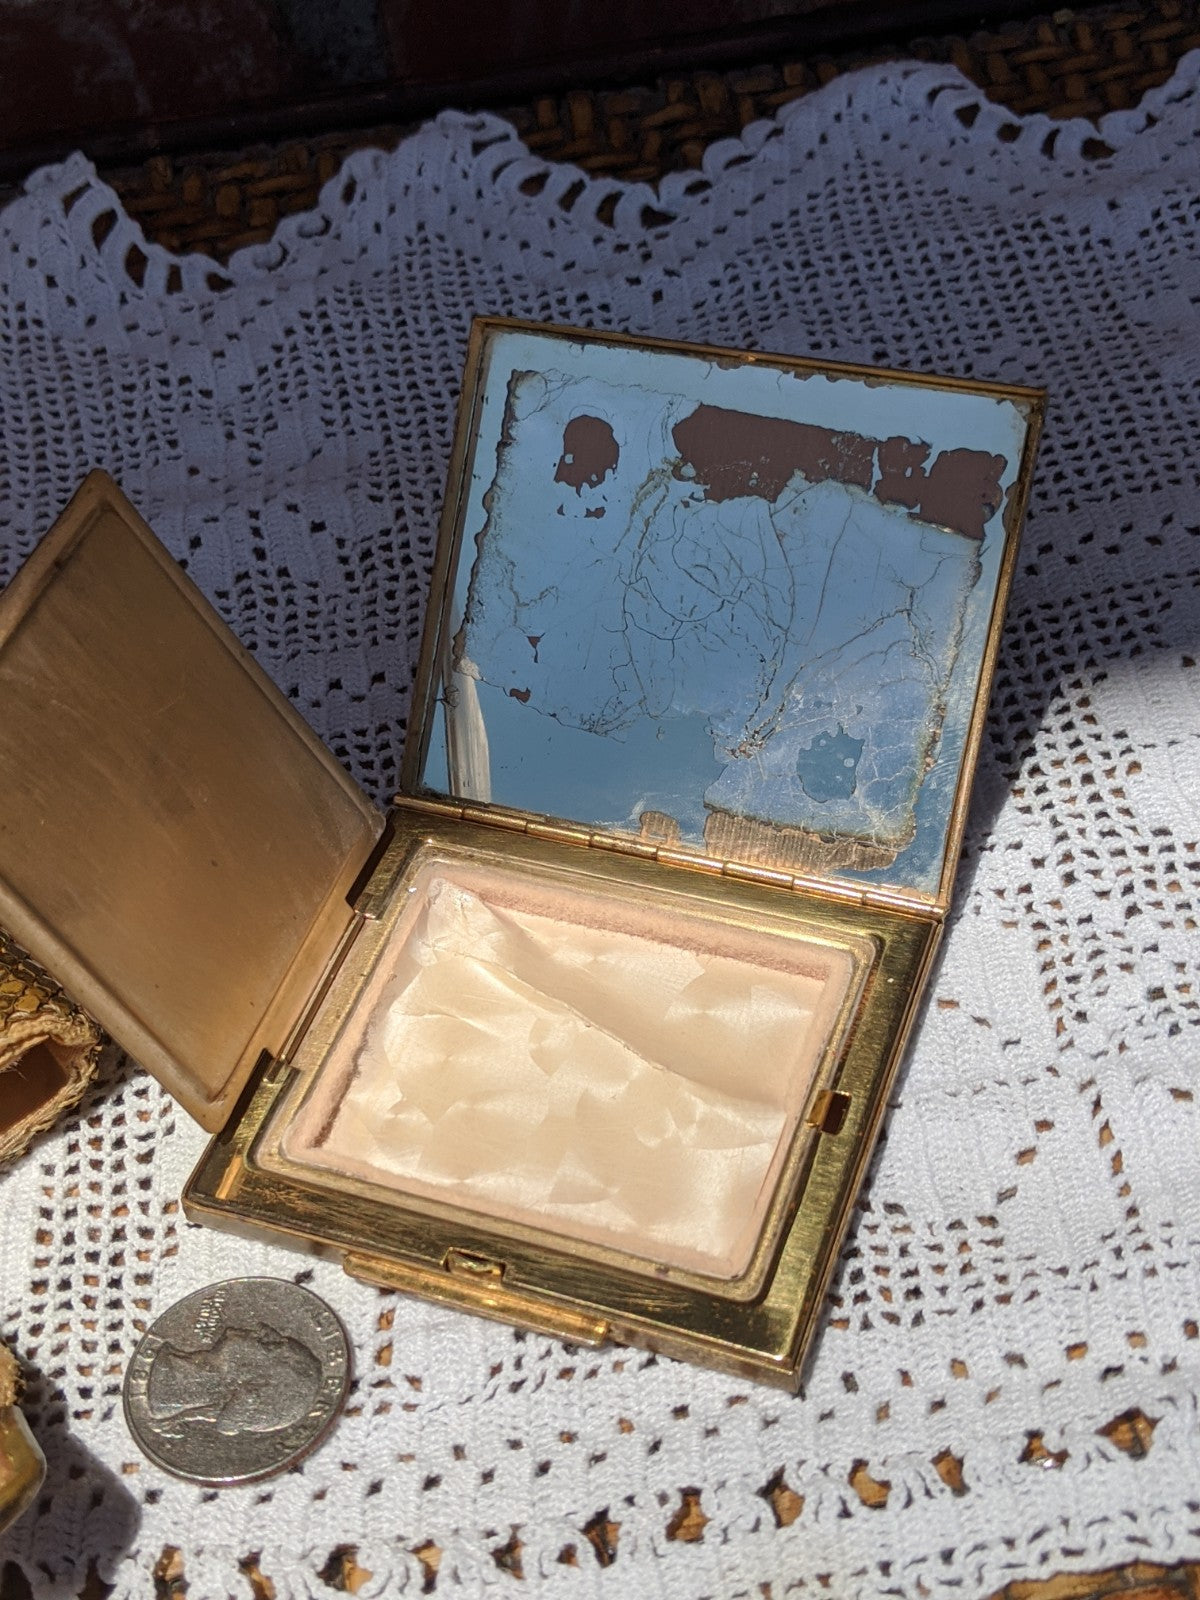 1940's era make-up compact with case